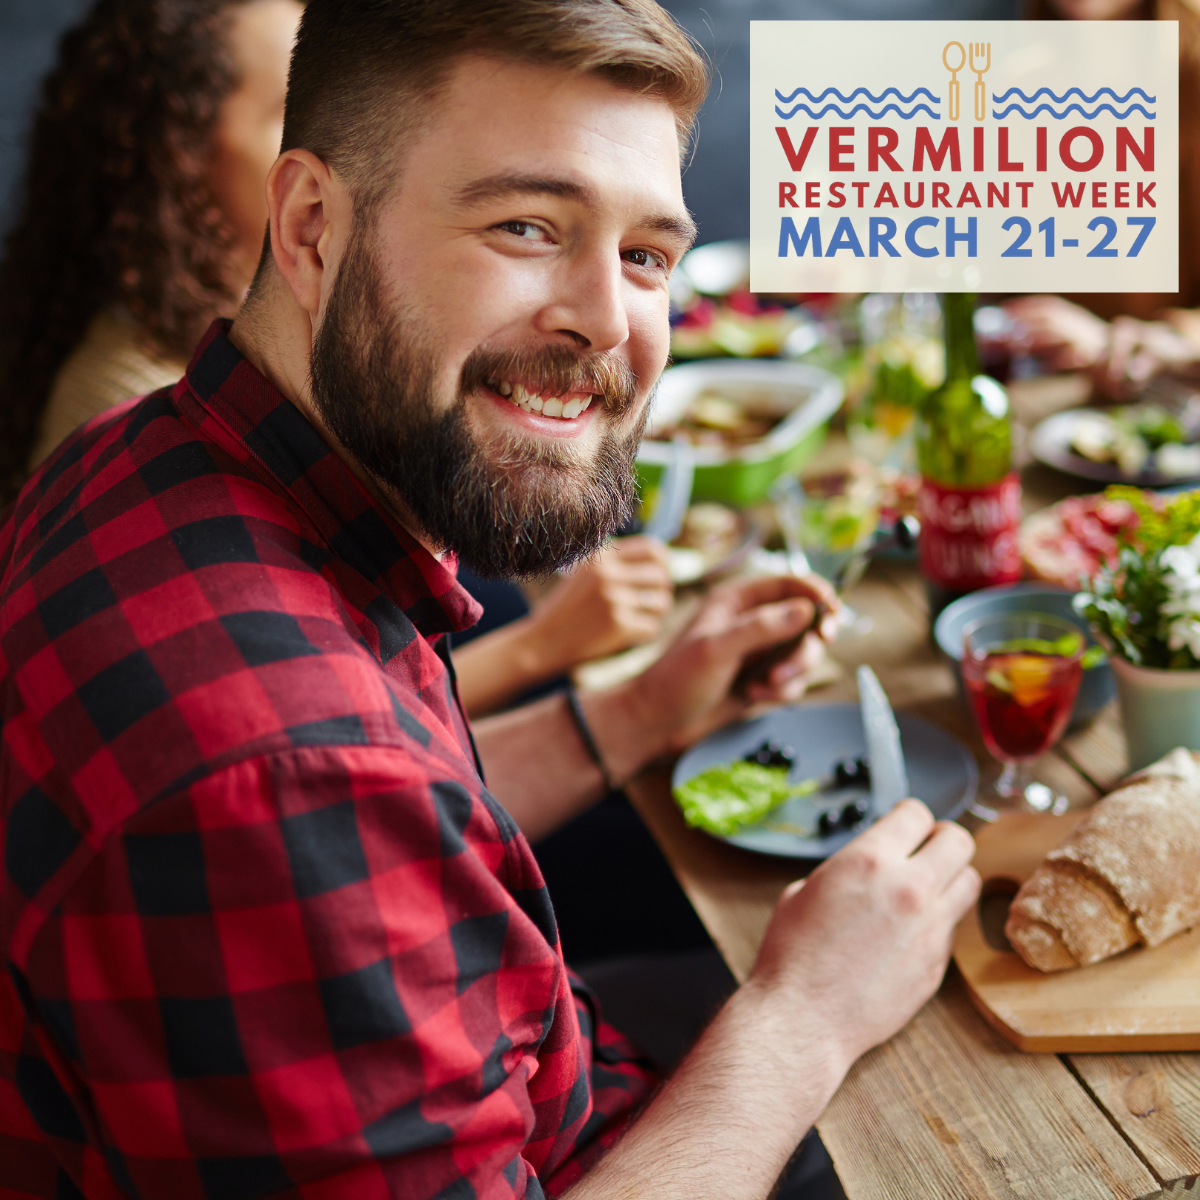 What Does Restaurant Week Look Like in A Small Town on a Great Lake? — Main Street Vermilion